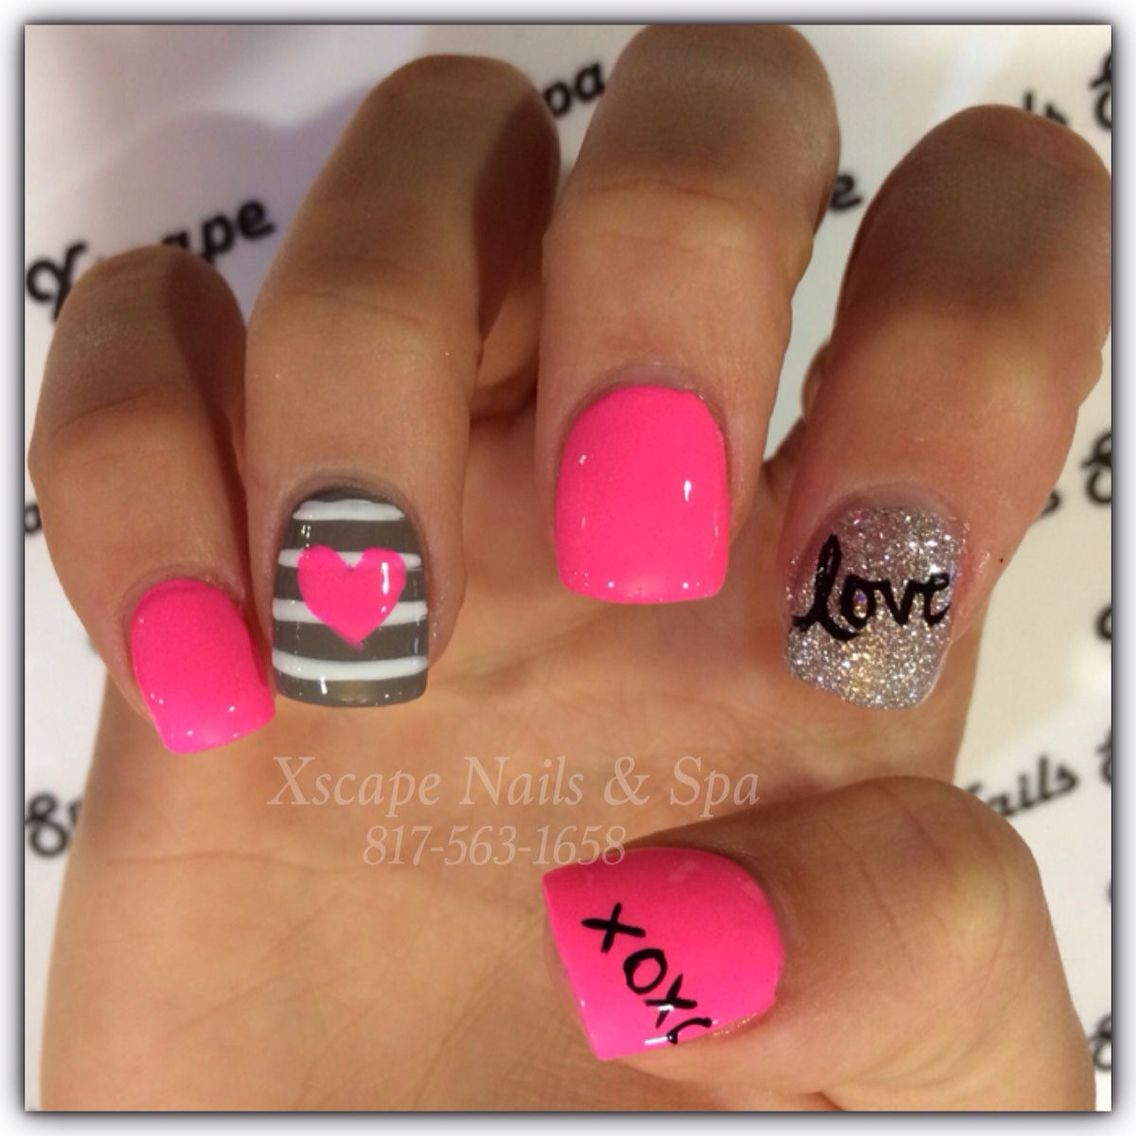 Explore Valentine Nail Designs, Cute Nail Designs And More!